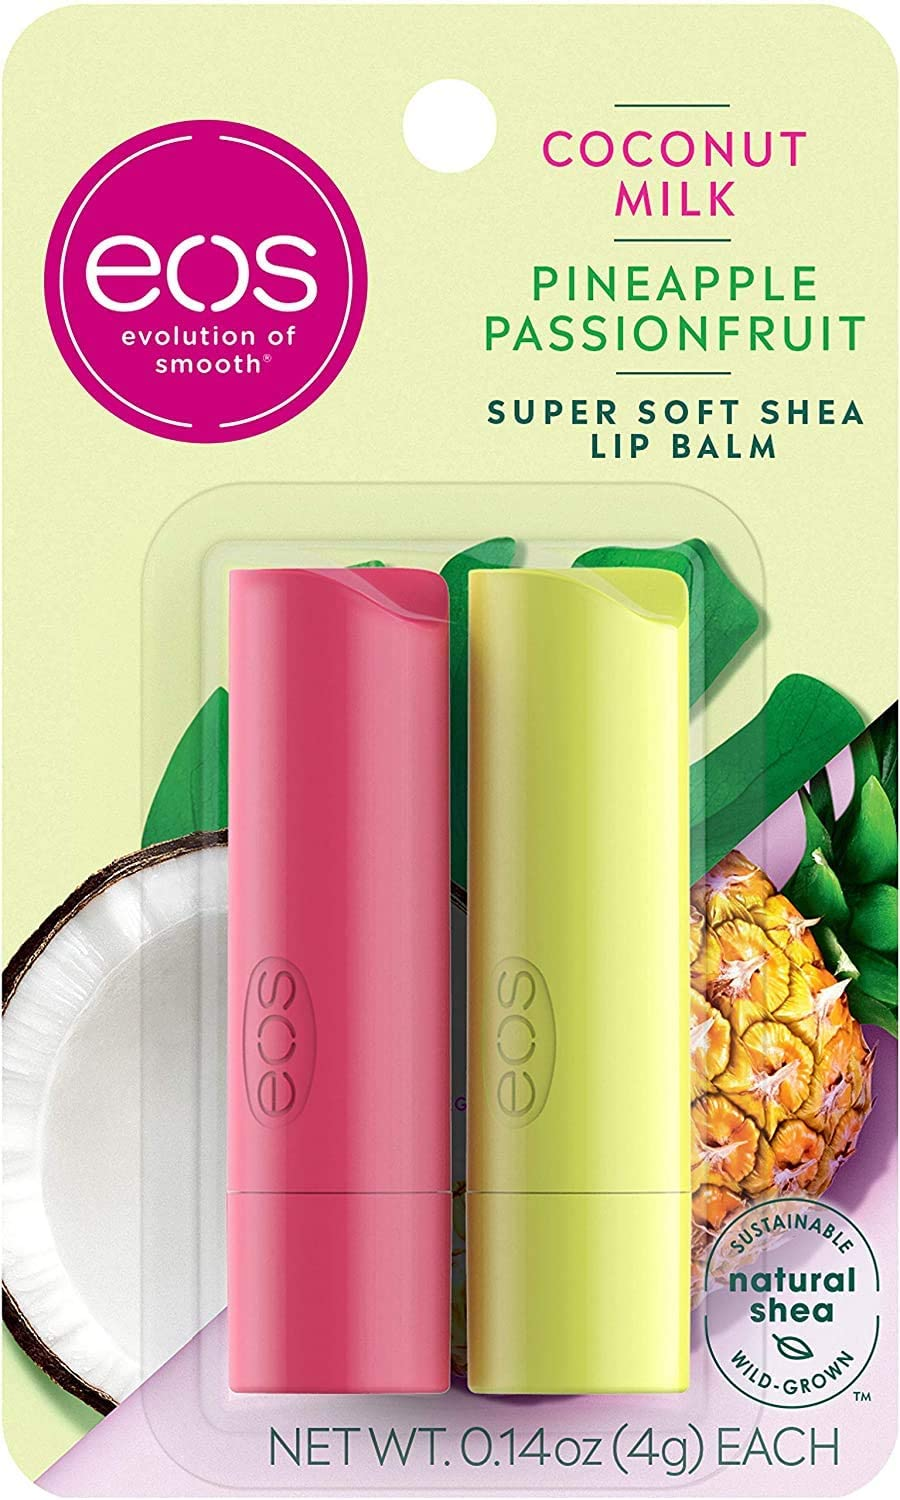 eos Super Soft Shea Stick Lip Balm, Coconut Milk and Pineapple Passionfruit, Deeply Hydrates and Seals in Moisture, Sustainably-Sourced Ingredients